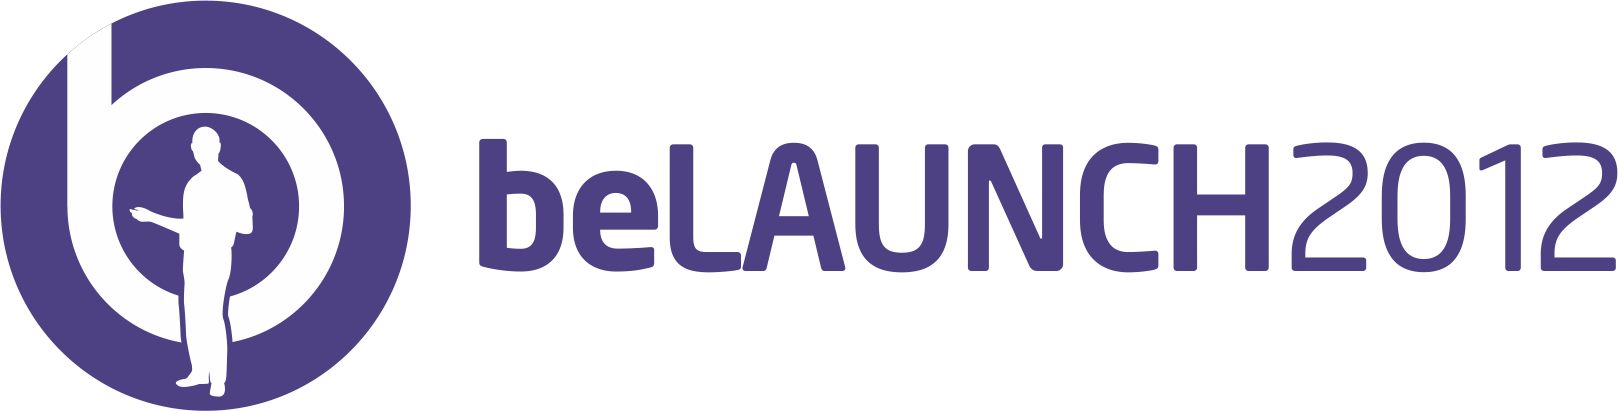 beLAUNCH_logo